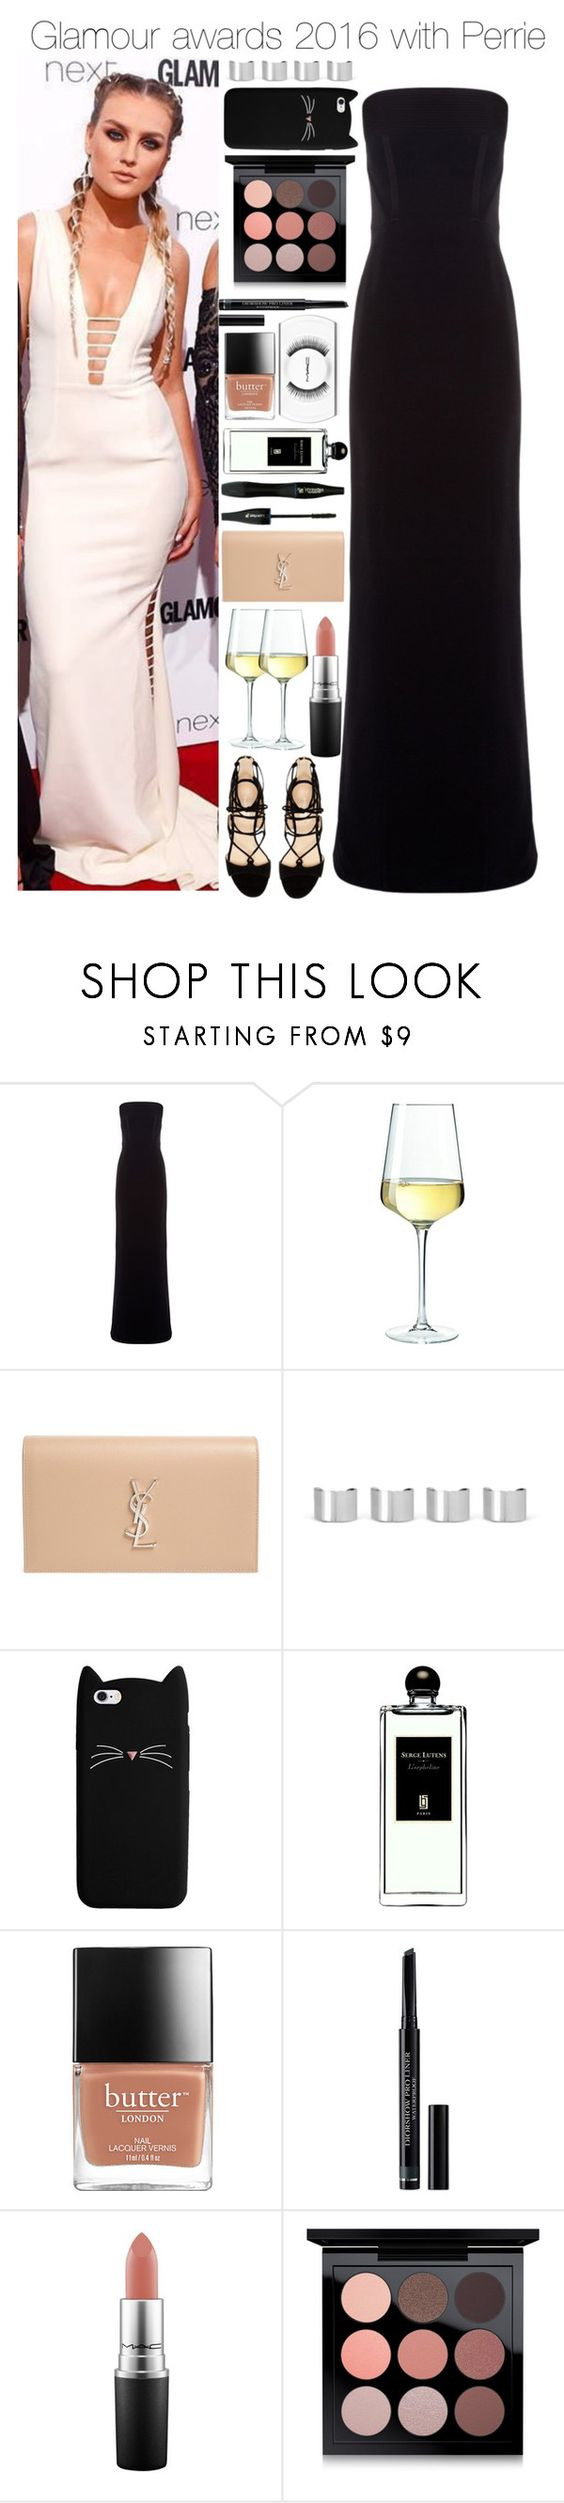 """Glamour awards 2016 with Perrie"" by xhoneymoonavenuex ❤ liked on Polyvore featuring Balenciaga, Marc Fisher, Yves Saint Laurent, Maison Margiela, Lancôme, Serge Lutens, Christian Dior and MAC Cosmetics"